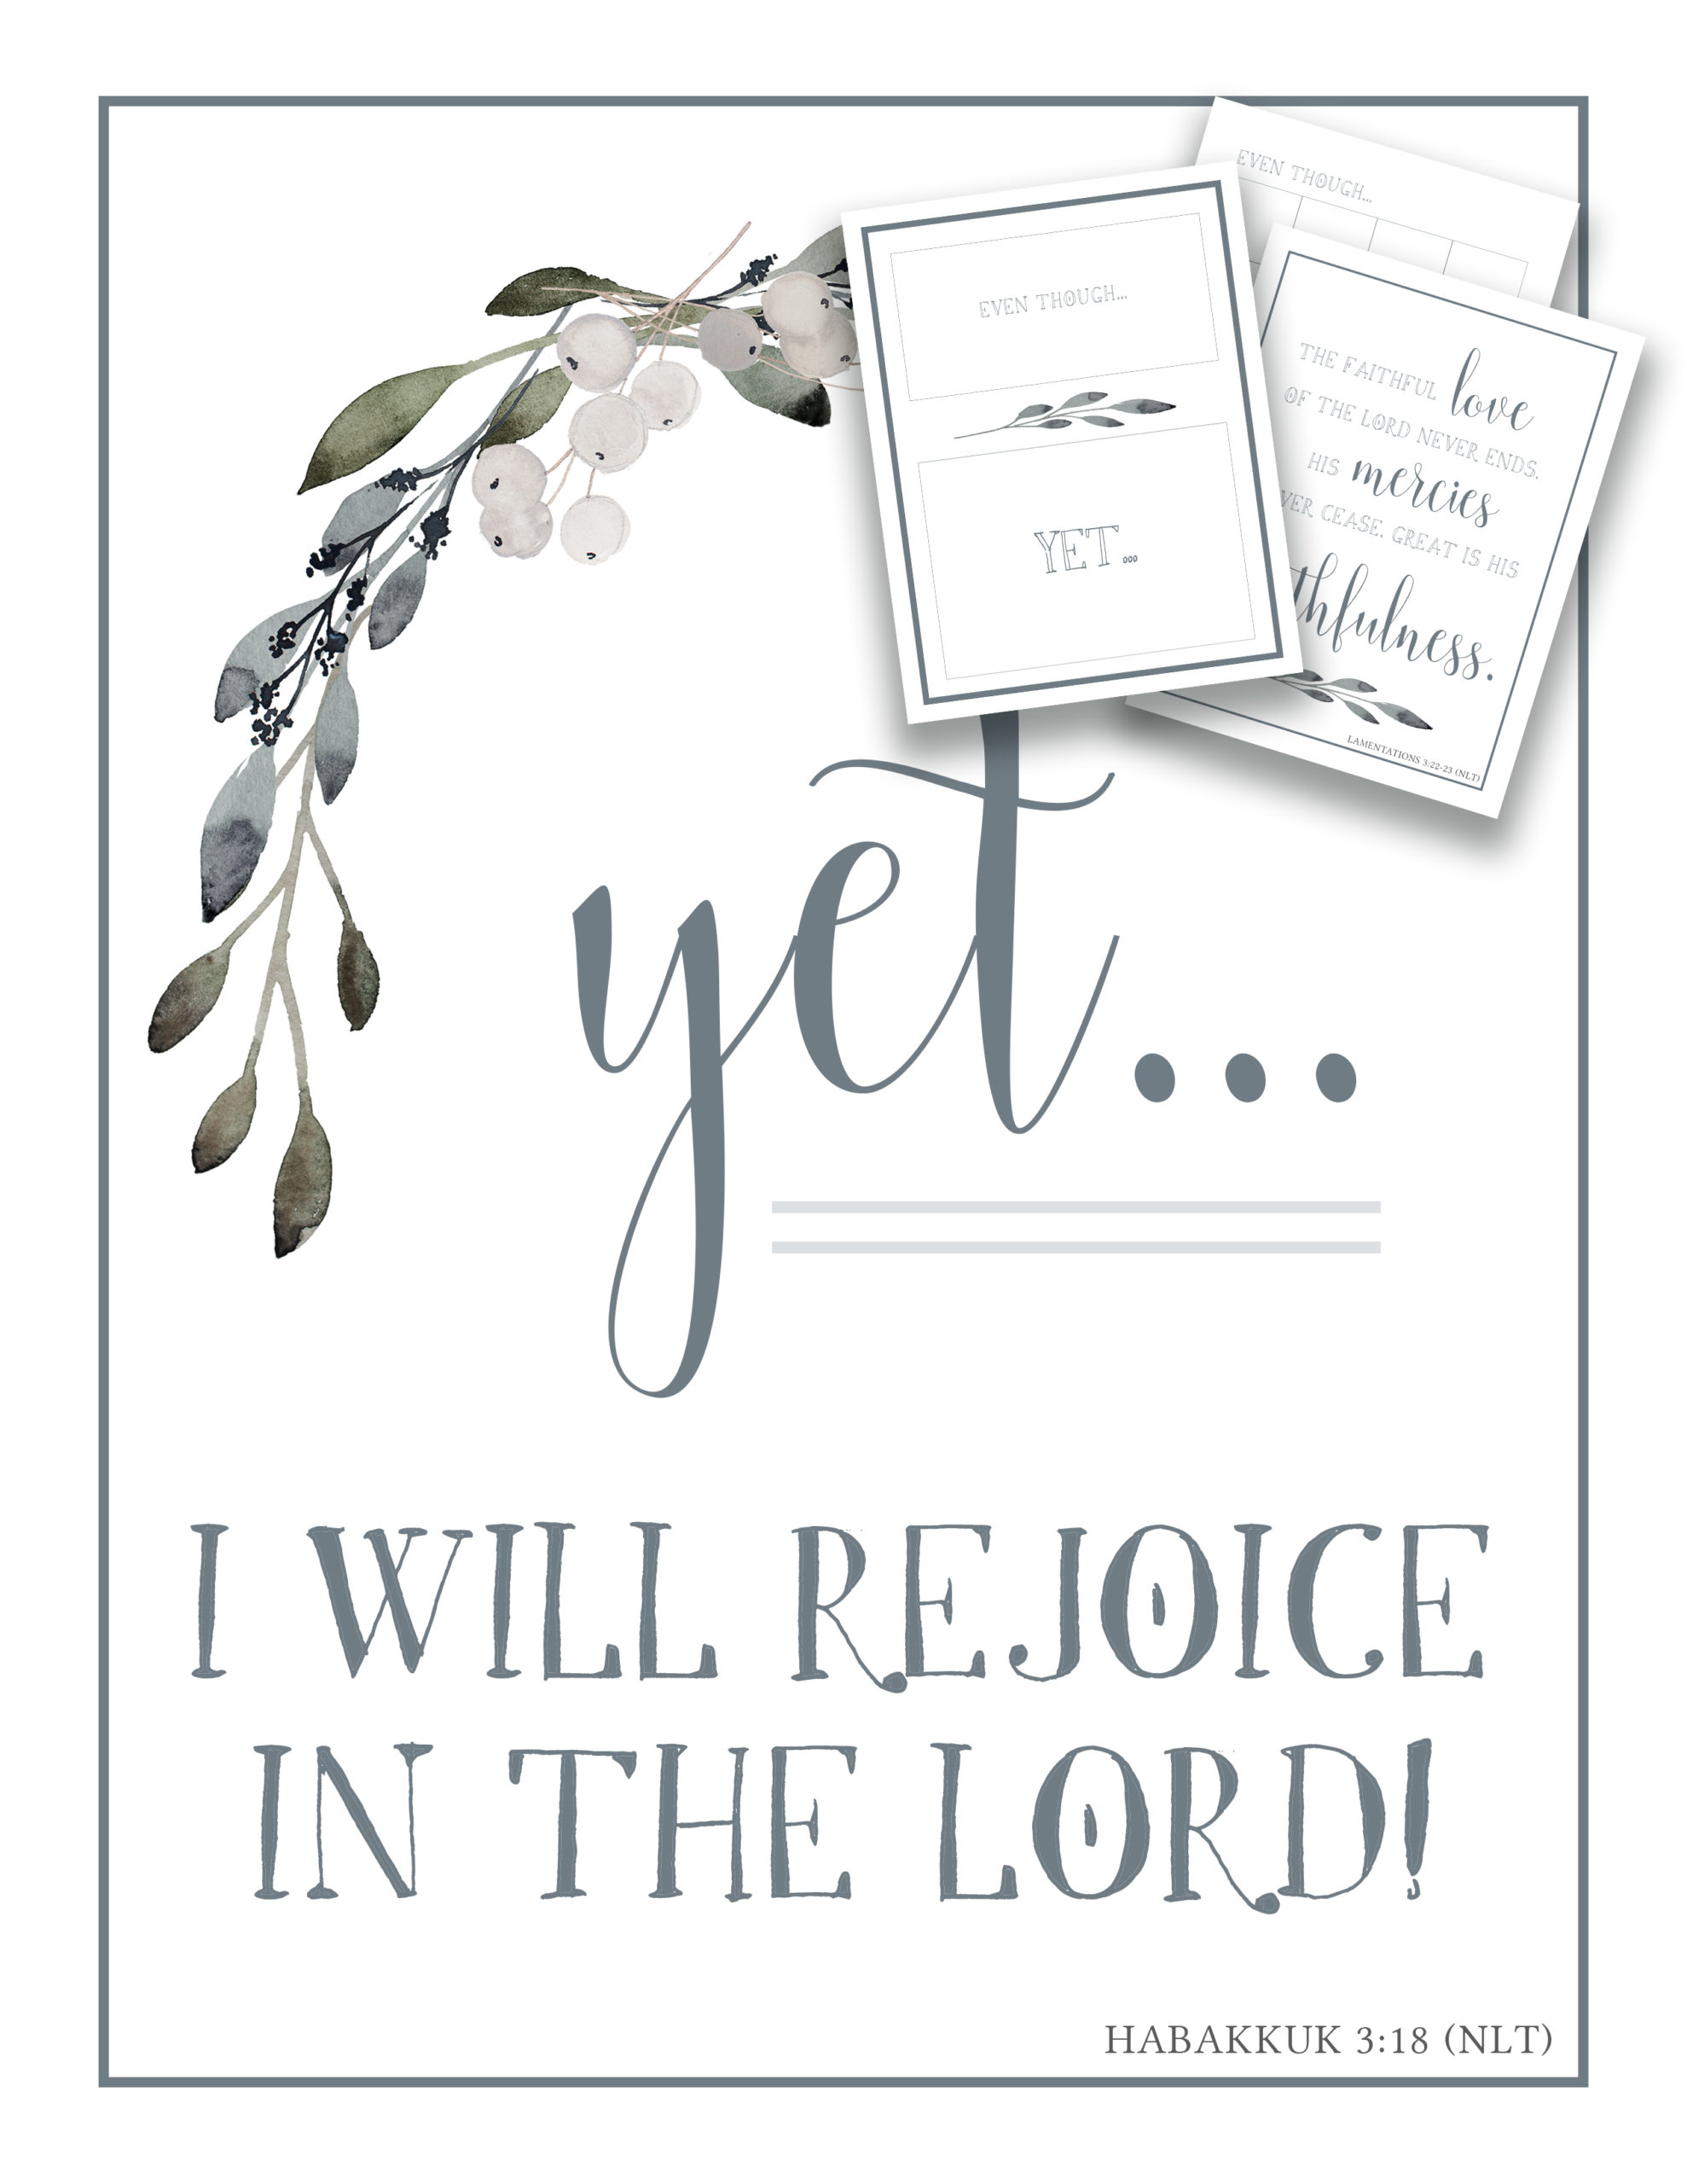 yet, I will rejoice in the Lord